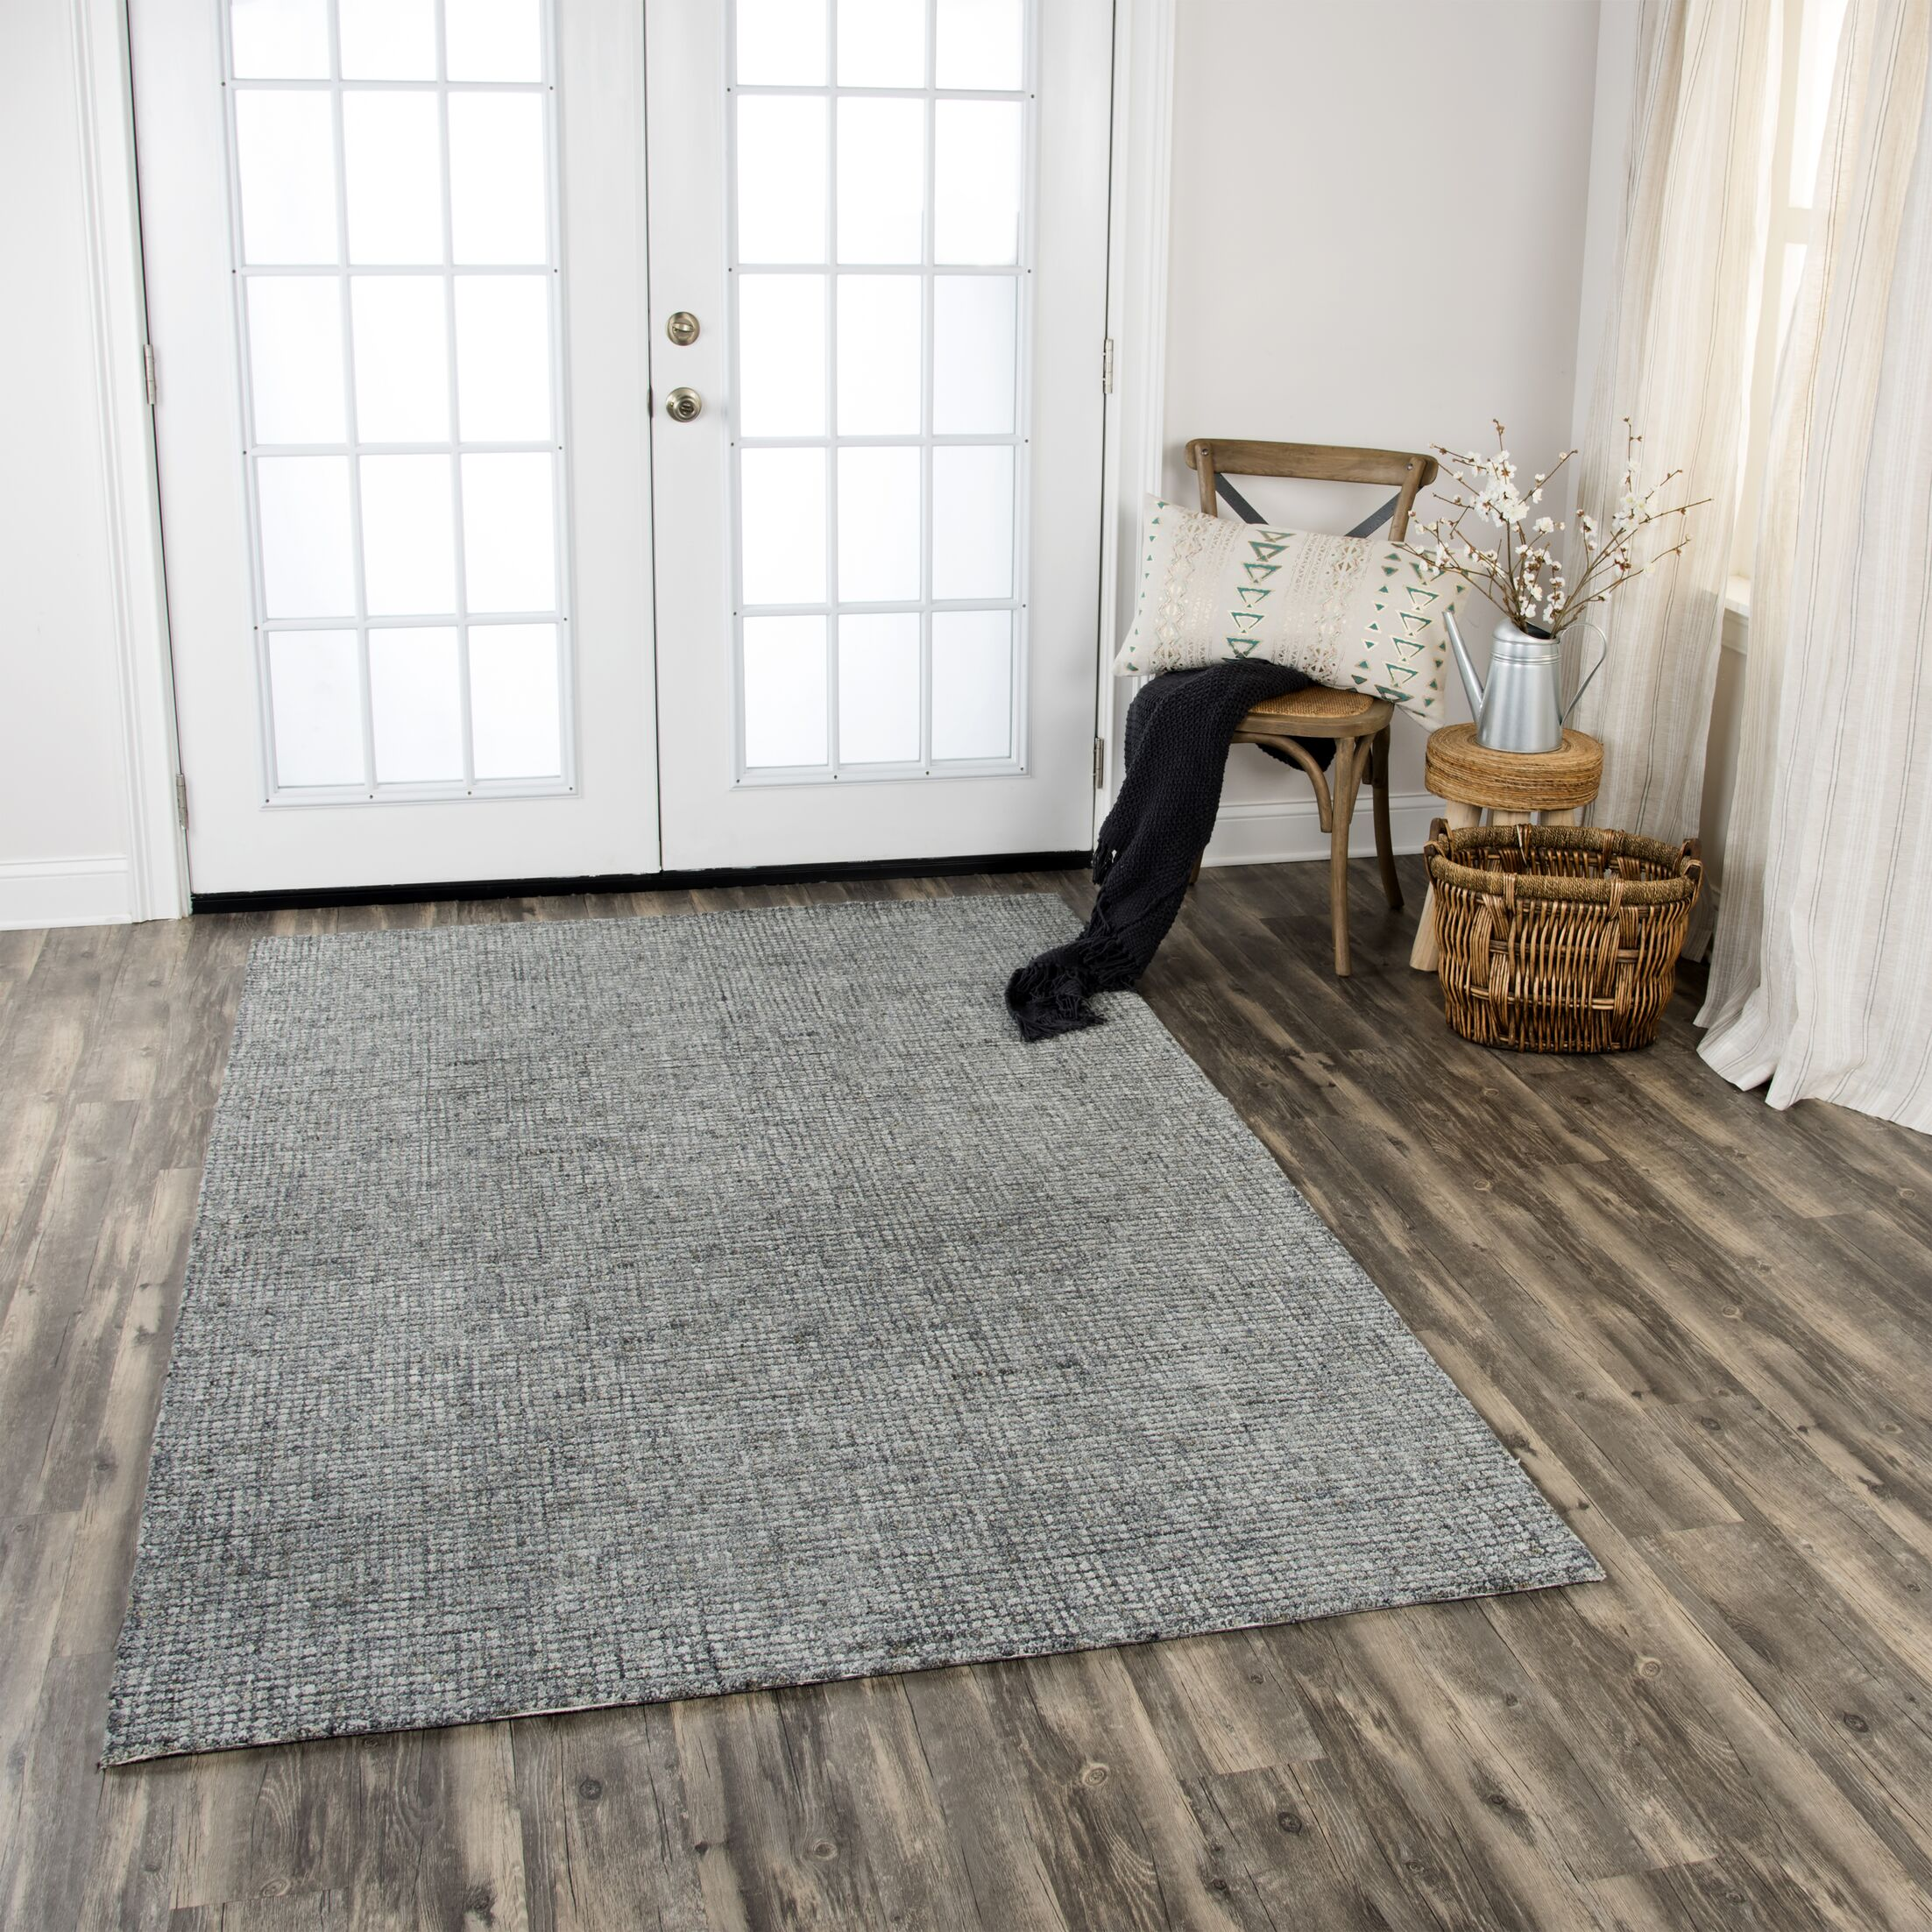 Hover Hand-Tufted Wool Dark Gray Area Rug Rug Size: Runner 2'6